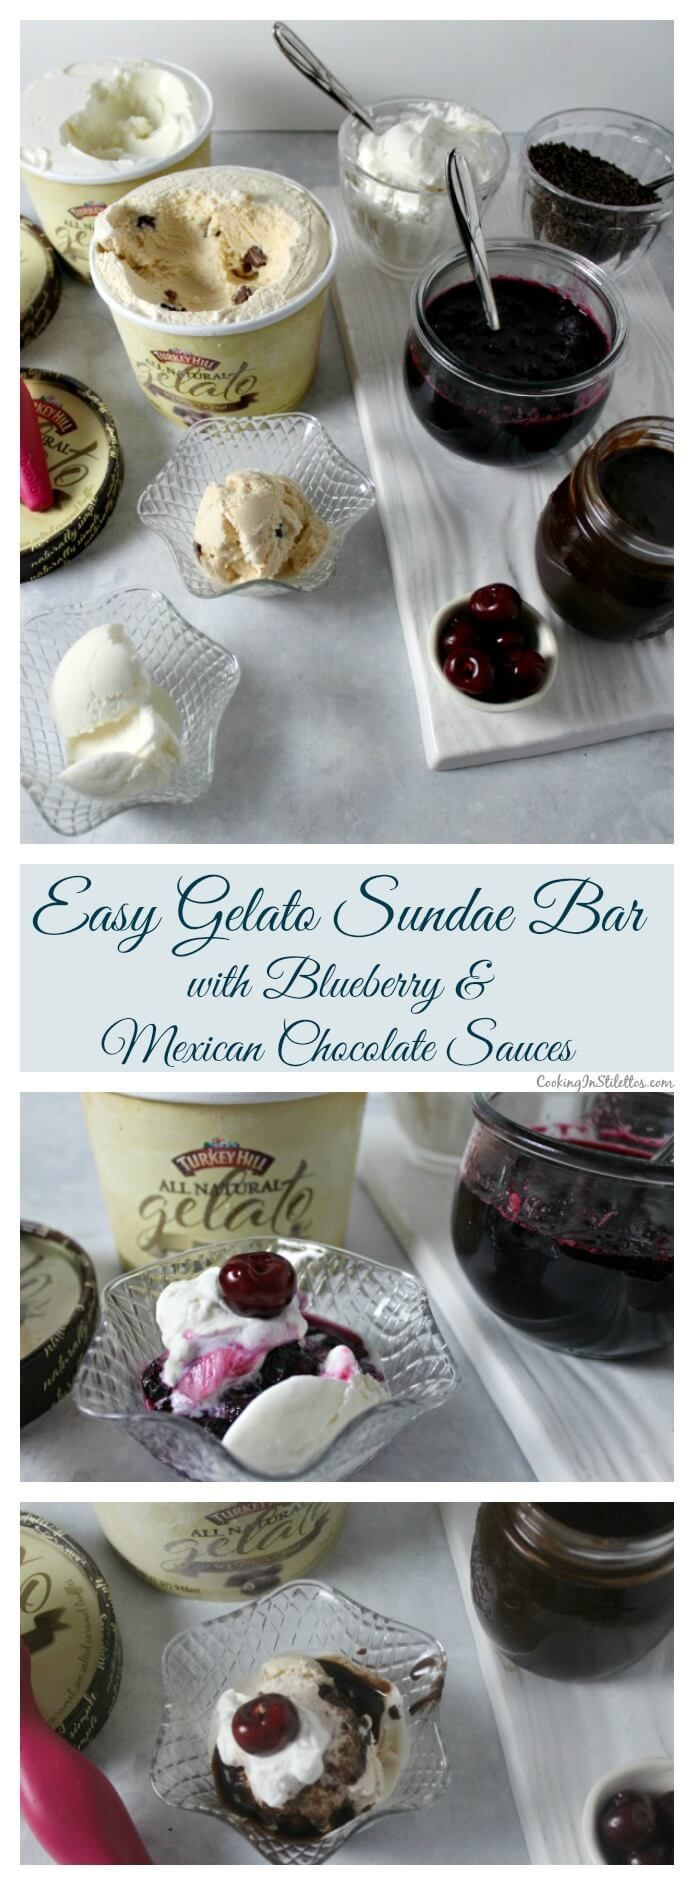 Easy Gelato Sundae Bar with homemade easy Blueberry Sauce and Mexican Chocolate Sauce - so easy to put together and your guests will love! | Cooking In Stilettos ~ http://cookinginstilettos.com